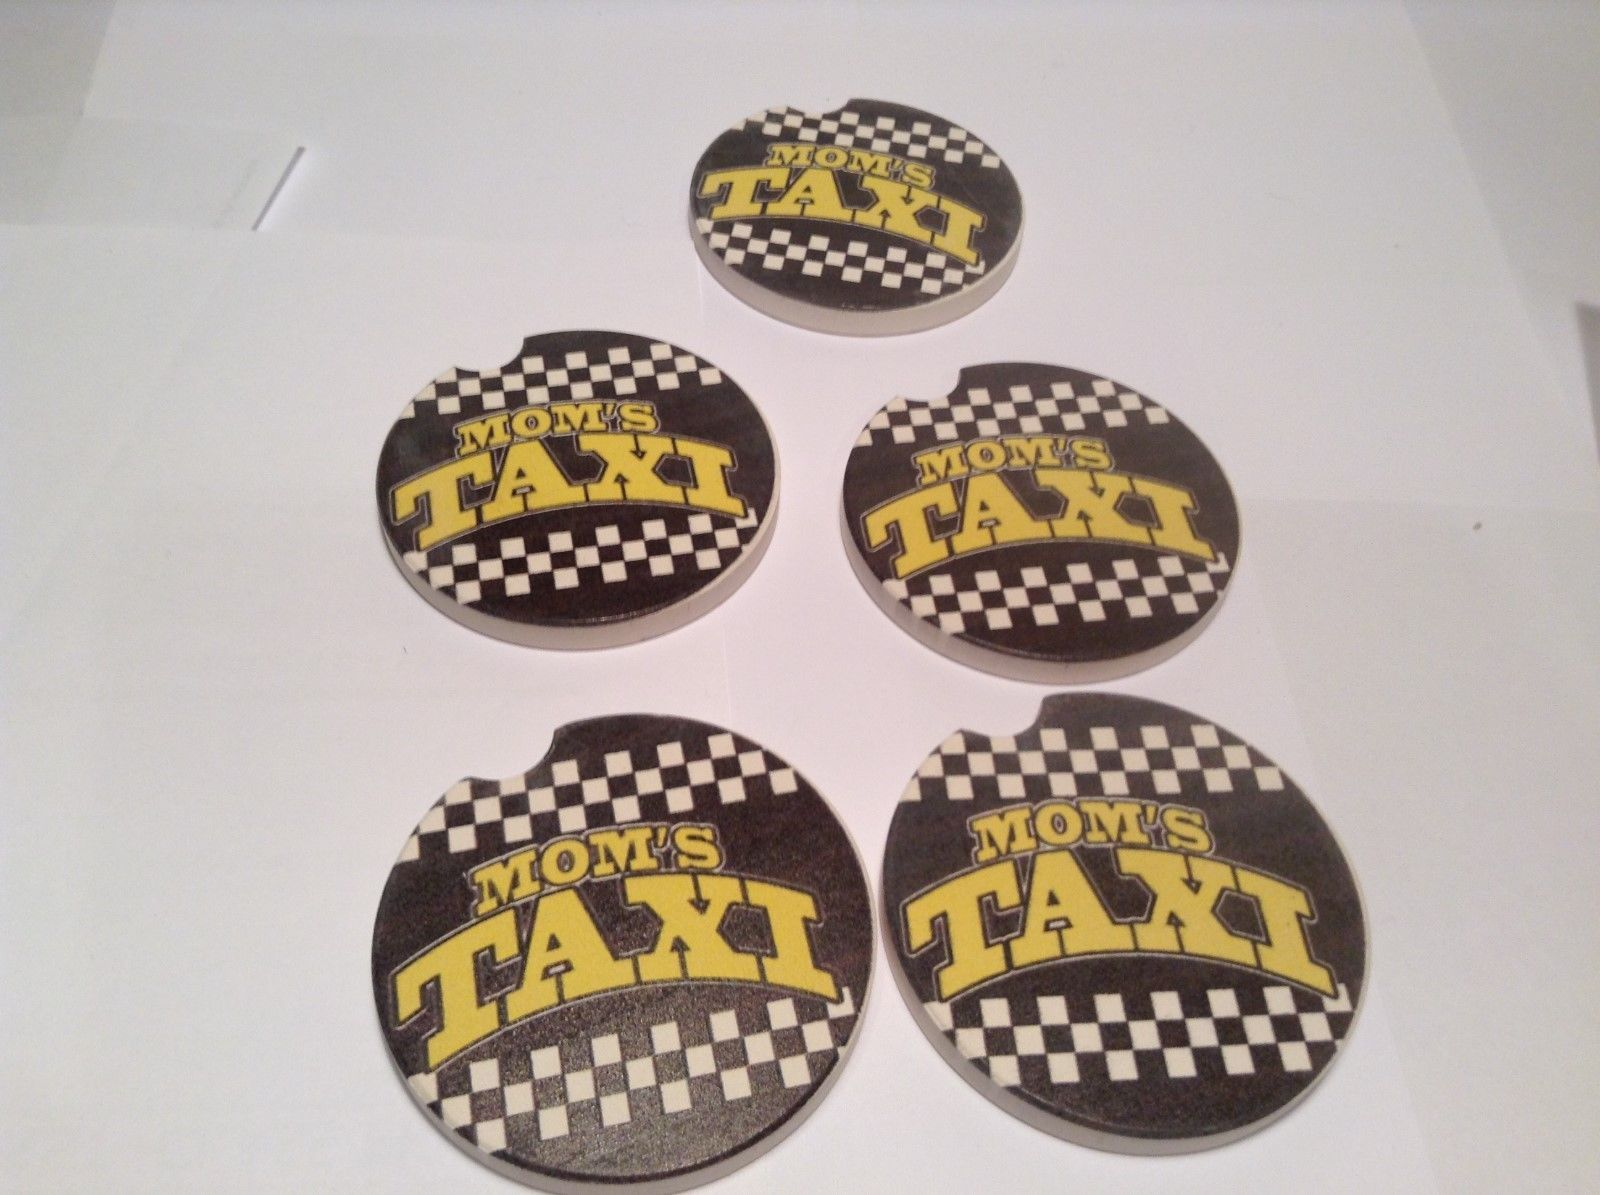 NEW Mom's Taxi Car Ceramic Coaster Set